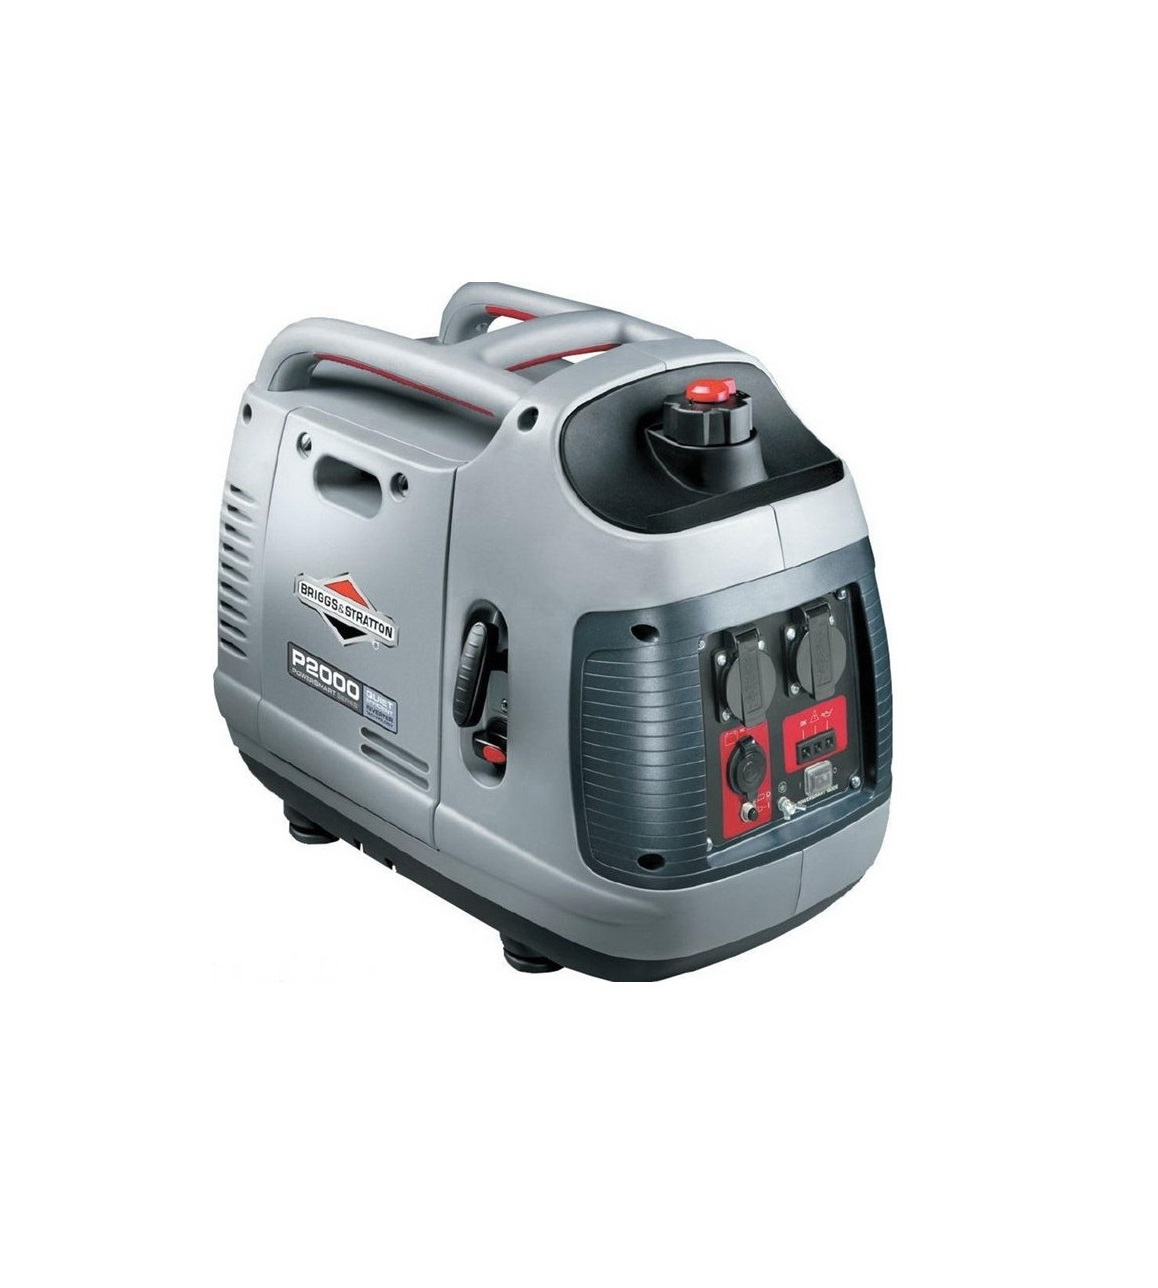 Бензиновый генератор (Бензогенератор) Briggs&Stratton P 2000 Inverter